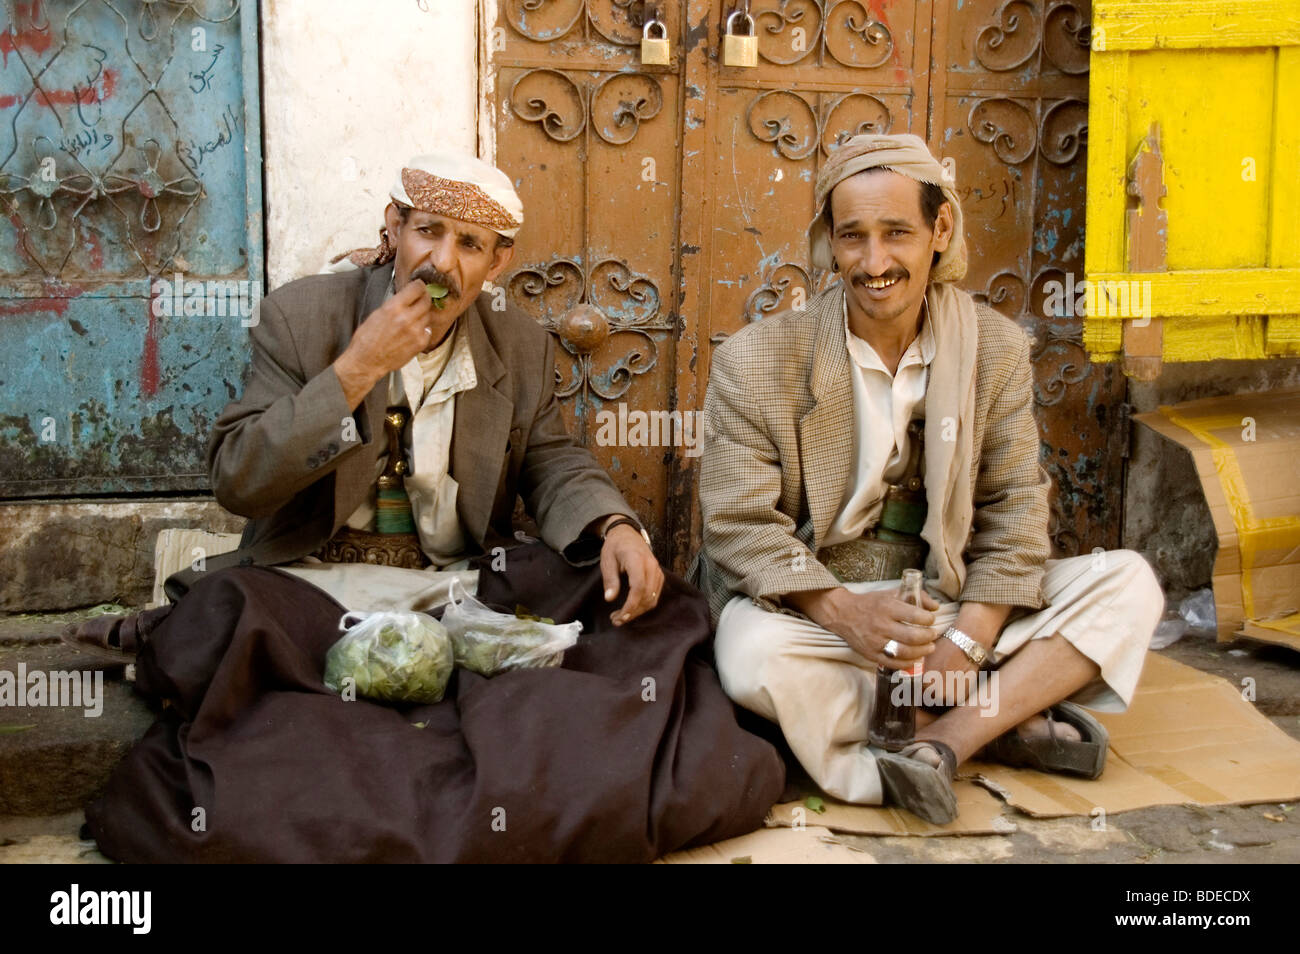 A portrait of two khat merchants, selling bags of the chewable leafy stimulant and legal drug, in the old market - Stock Image